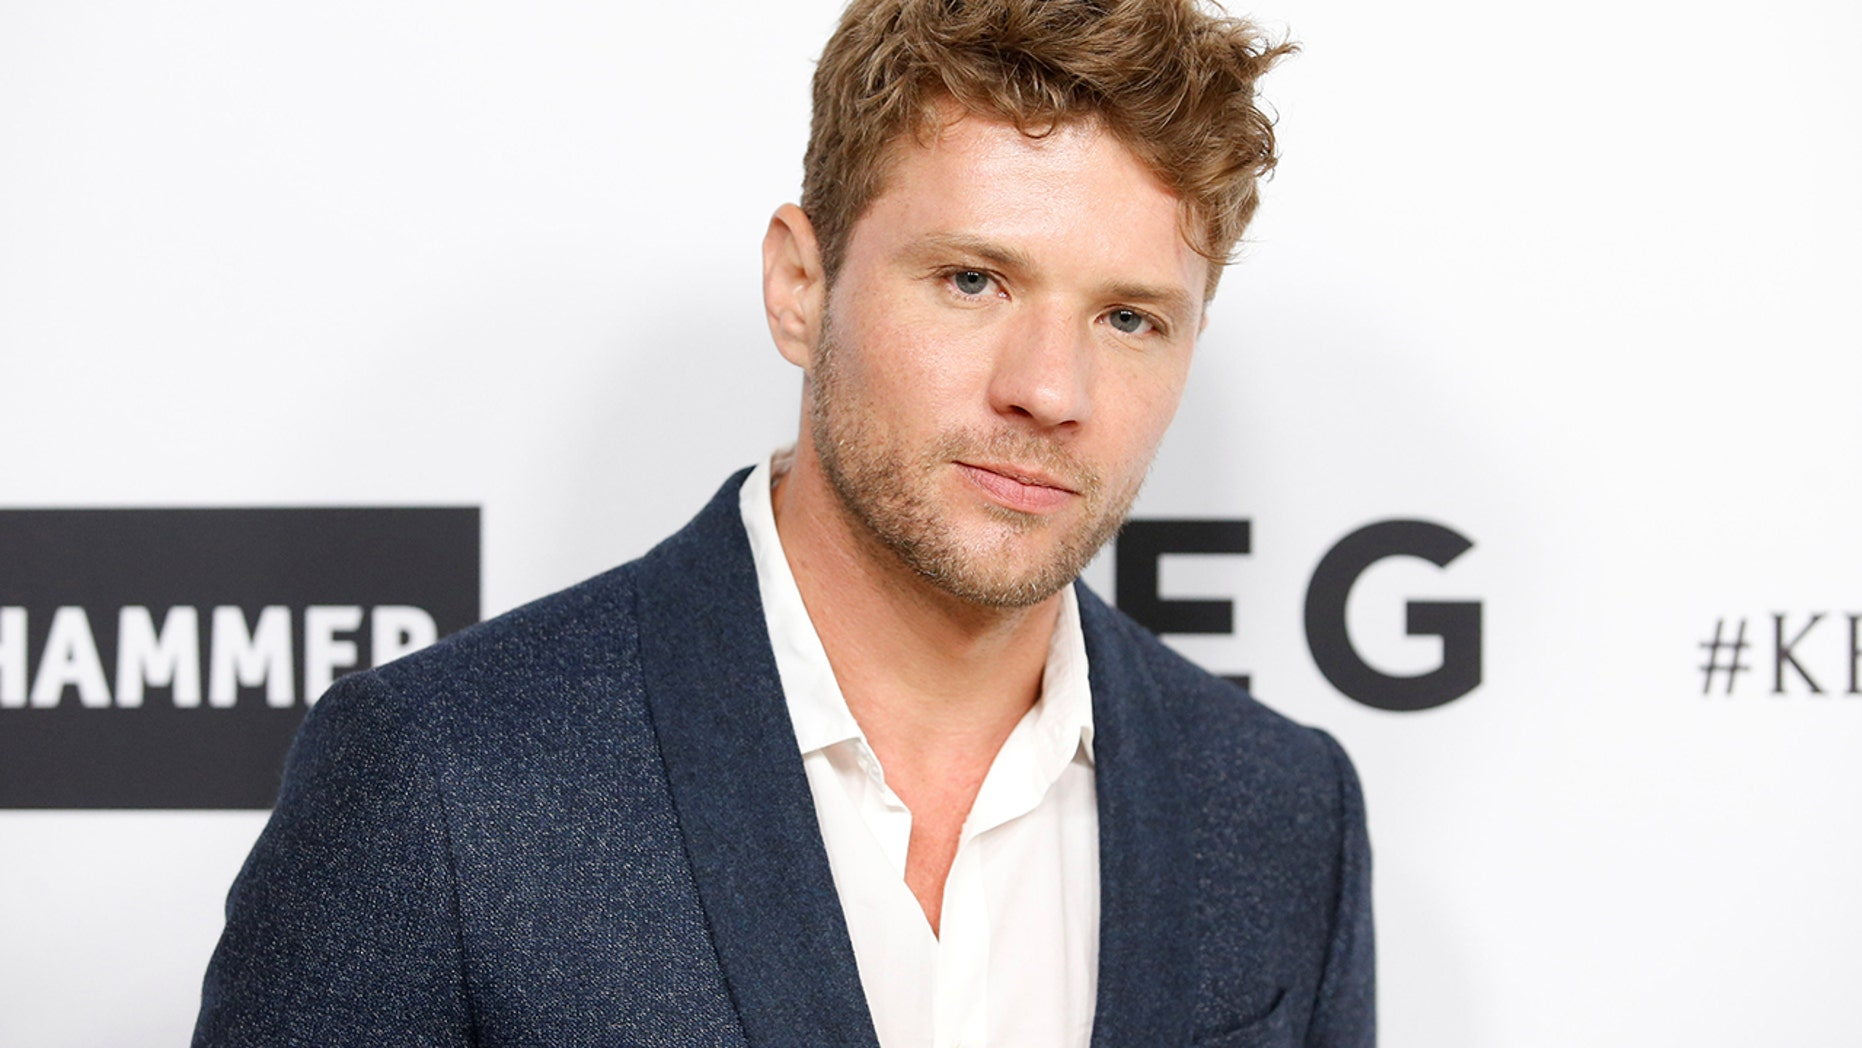 Actor Ryan Phillippe poses at Elton John's 70th Birthday and 50-Year Songwriting Partnership with Bernie Taupin benefiting the Elton John AIDS Foundation and the UCLA Hammer Museum at RED Studios Hollywood in Los Angeles, March 25, 2017.